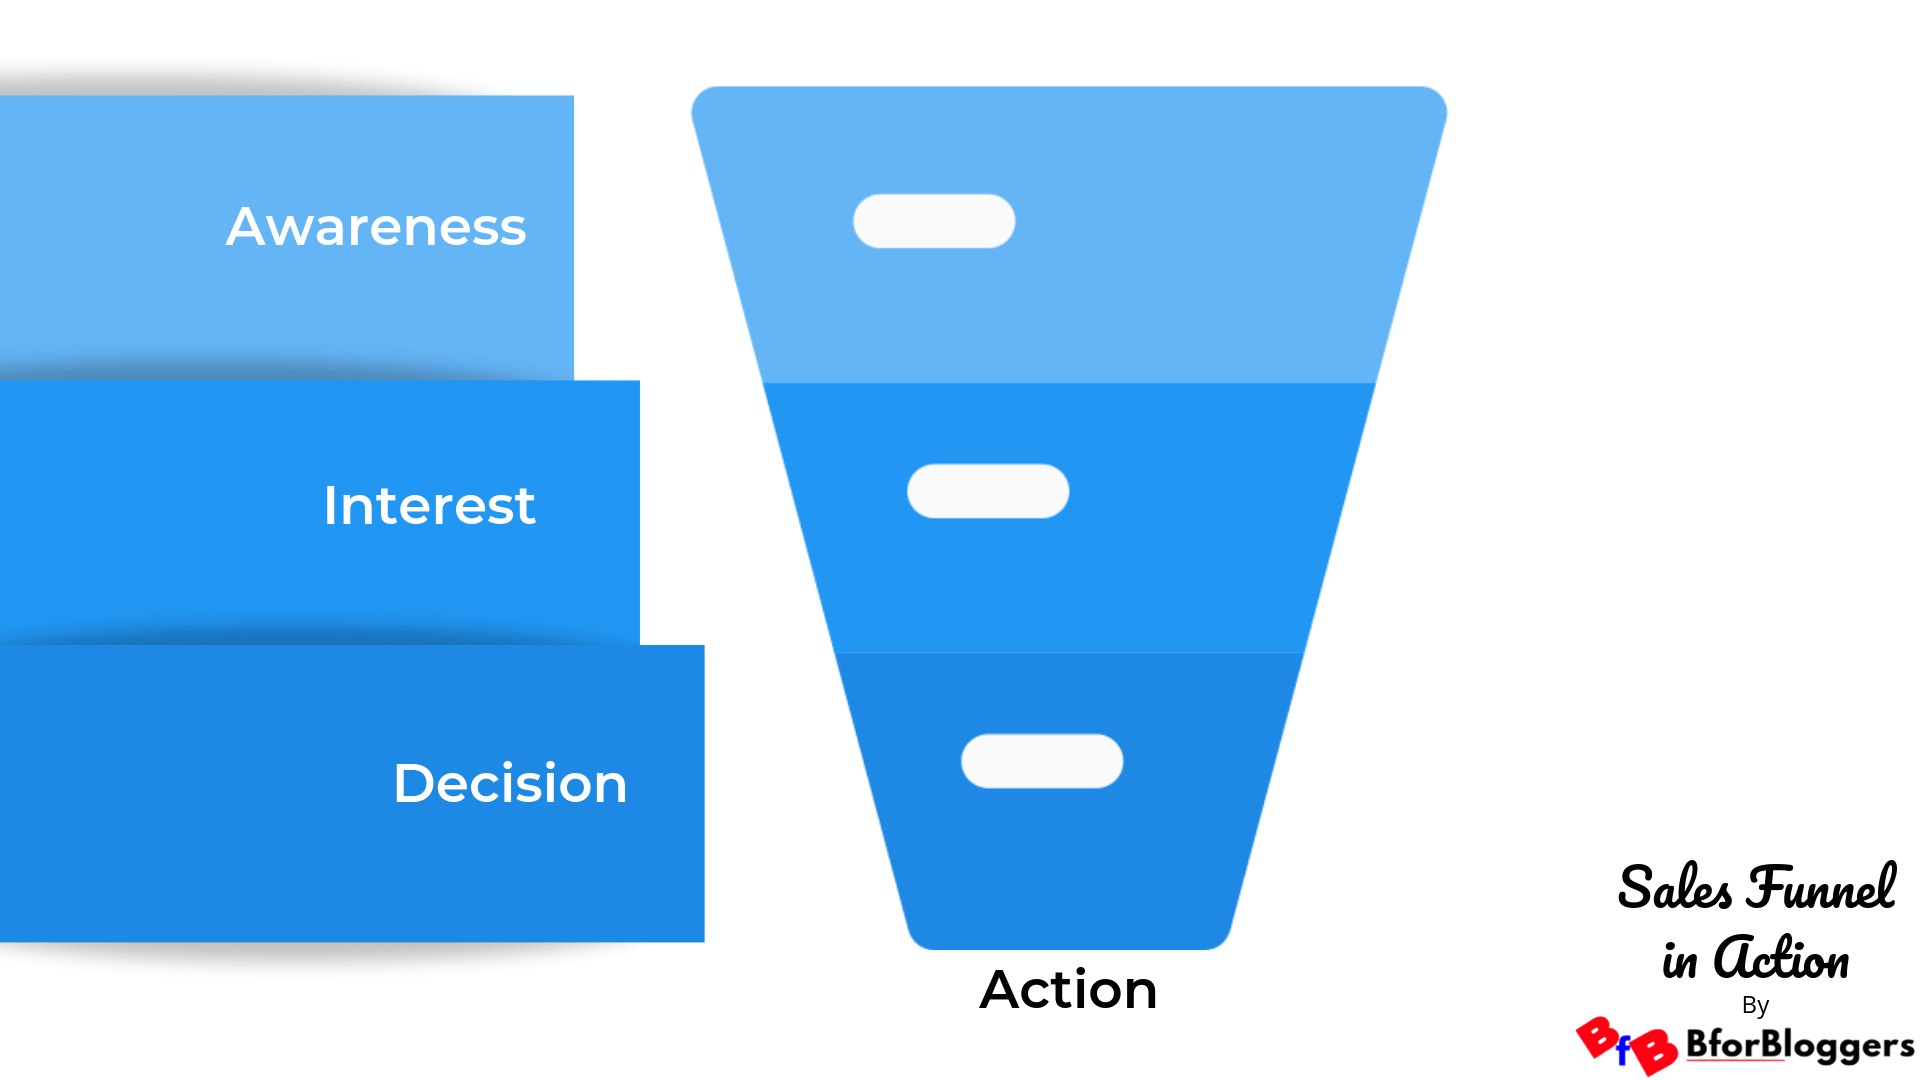 sales-funnel-in-action-original-by-Bforbloggers